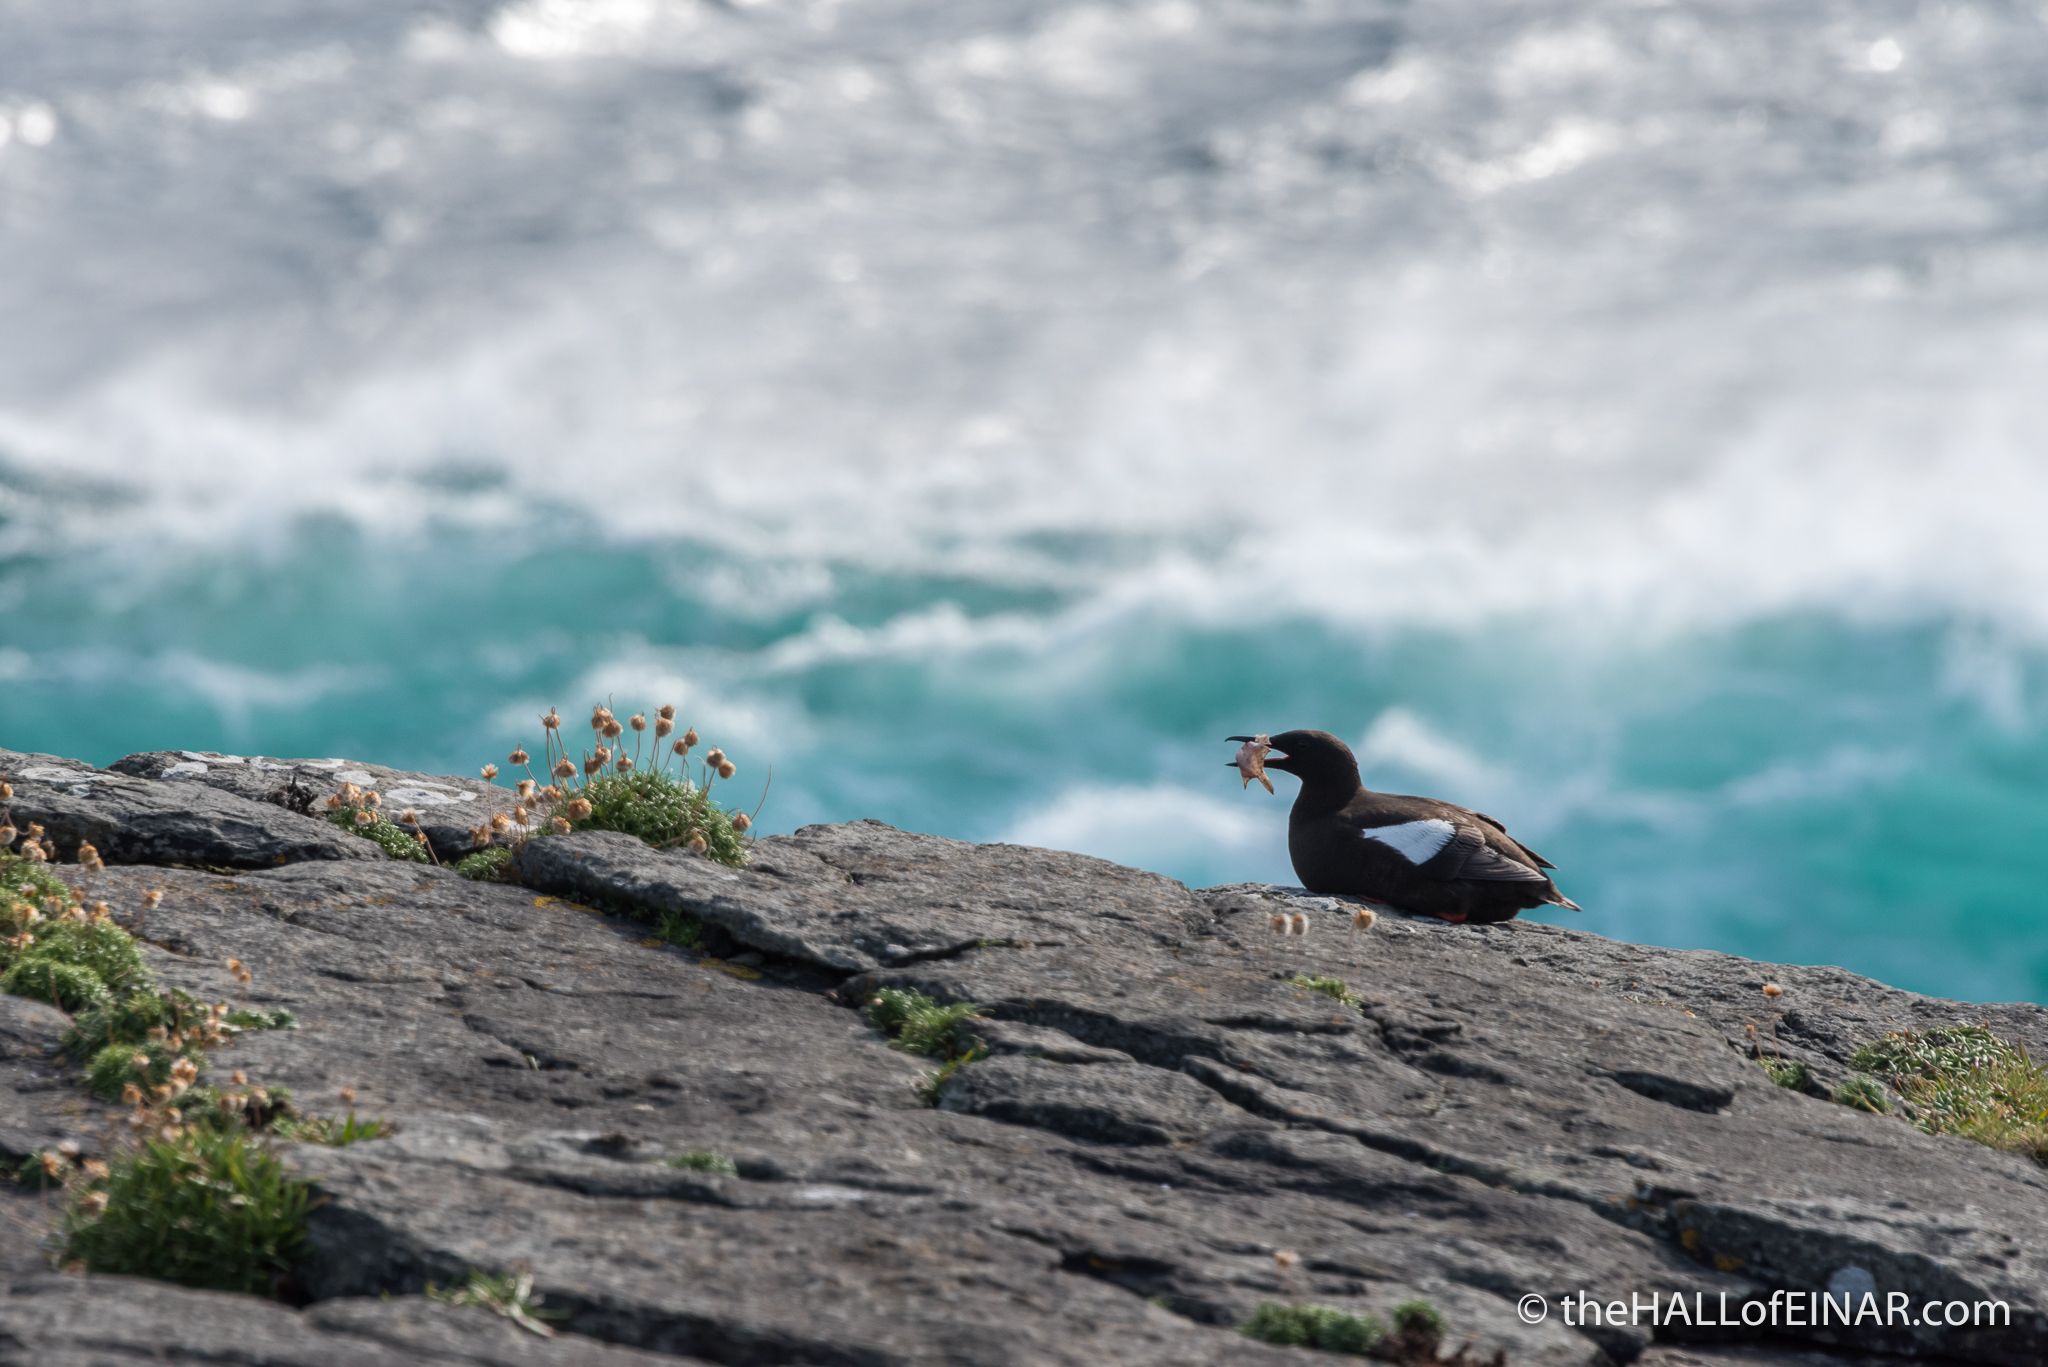 Black Guillemot - The Hall of Einar - photograph (c) David Bailey (not the)